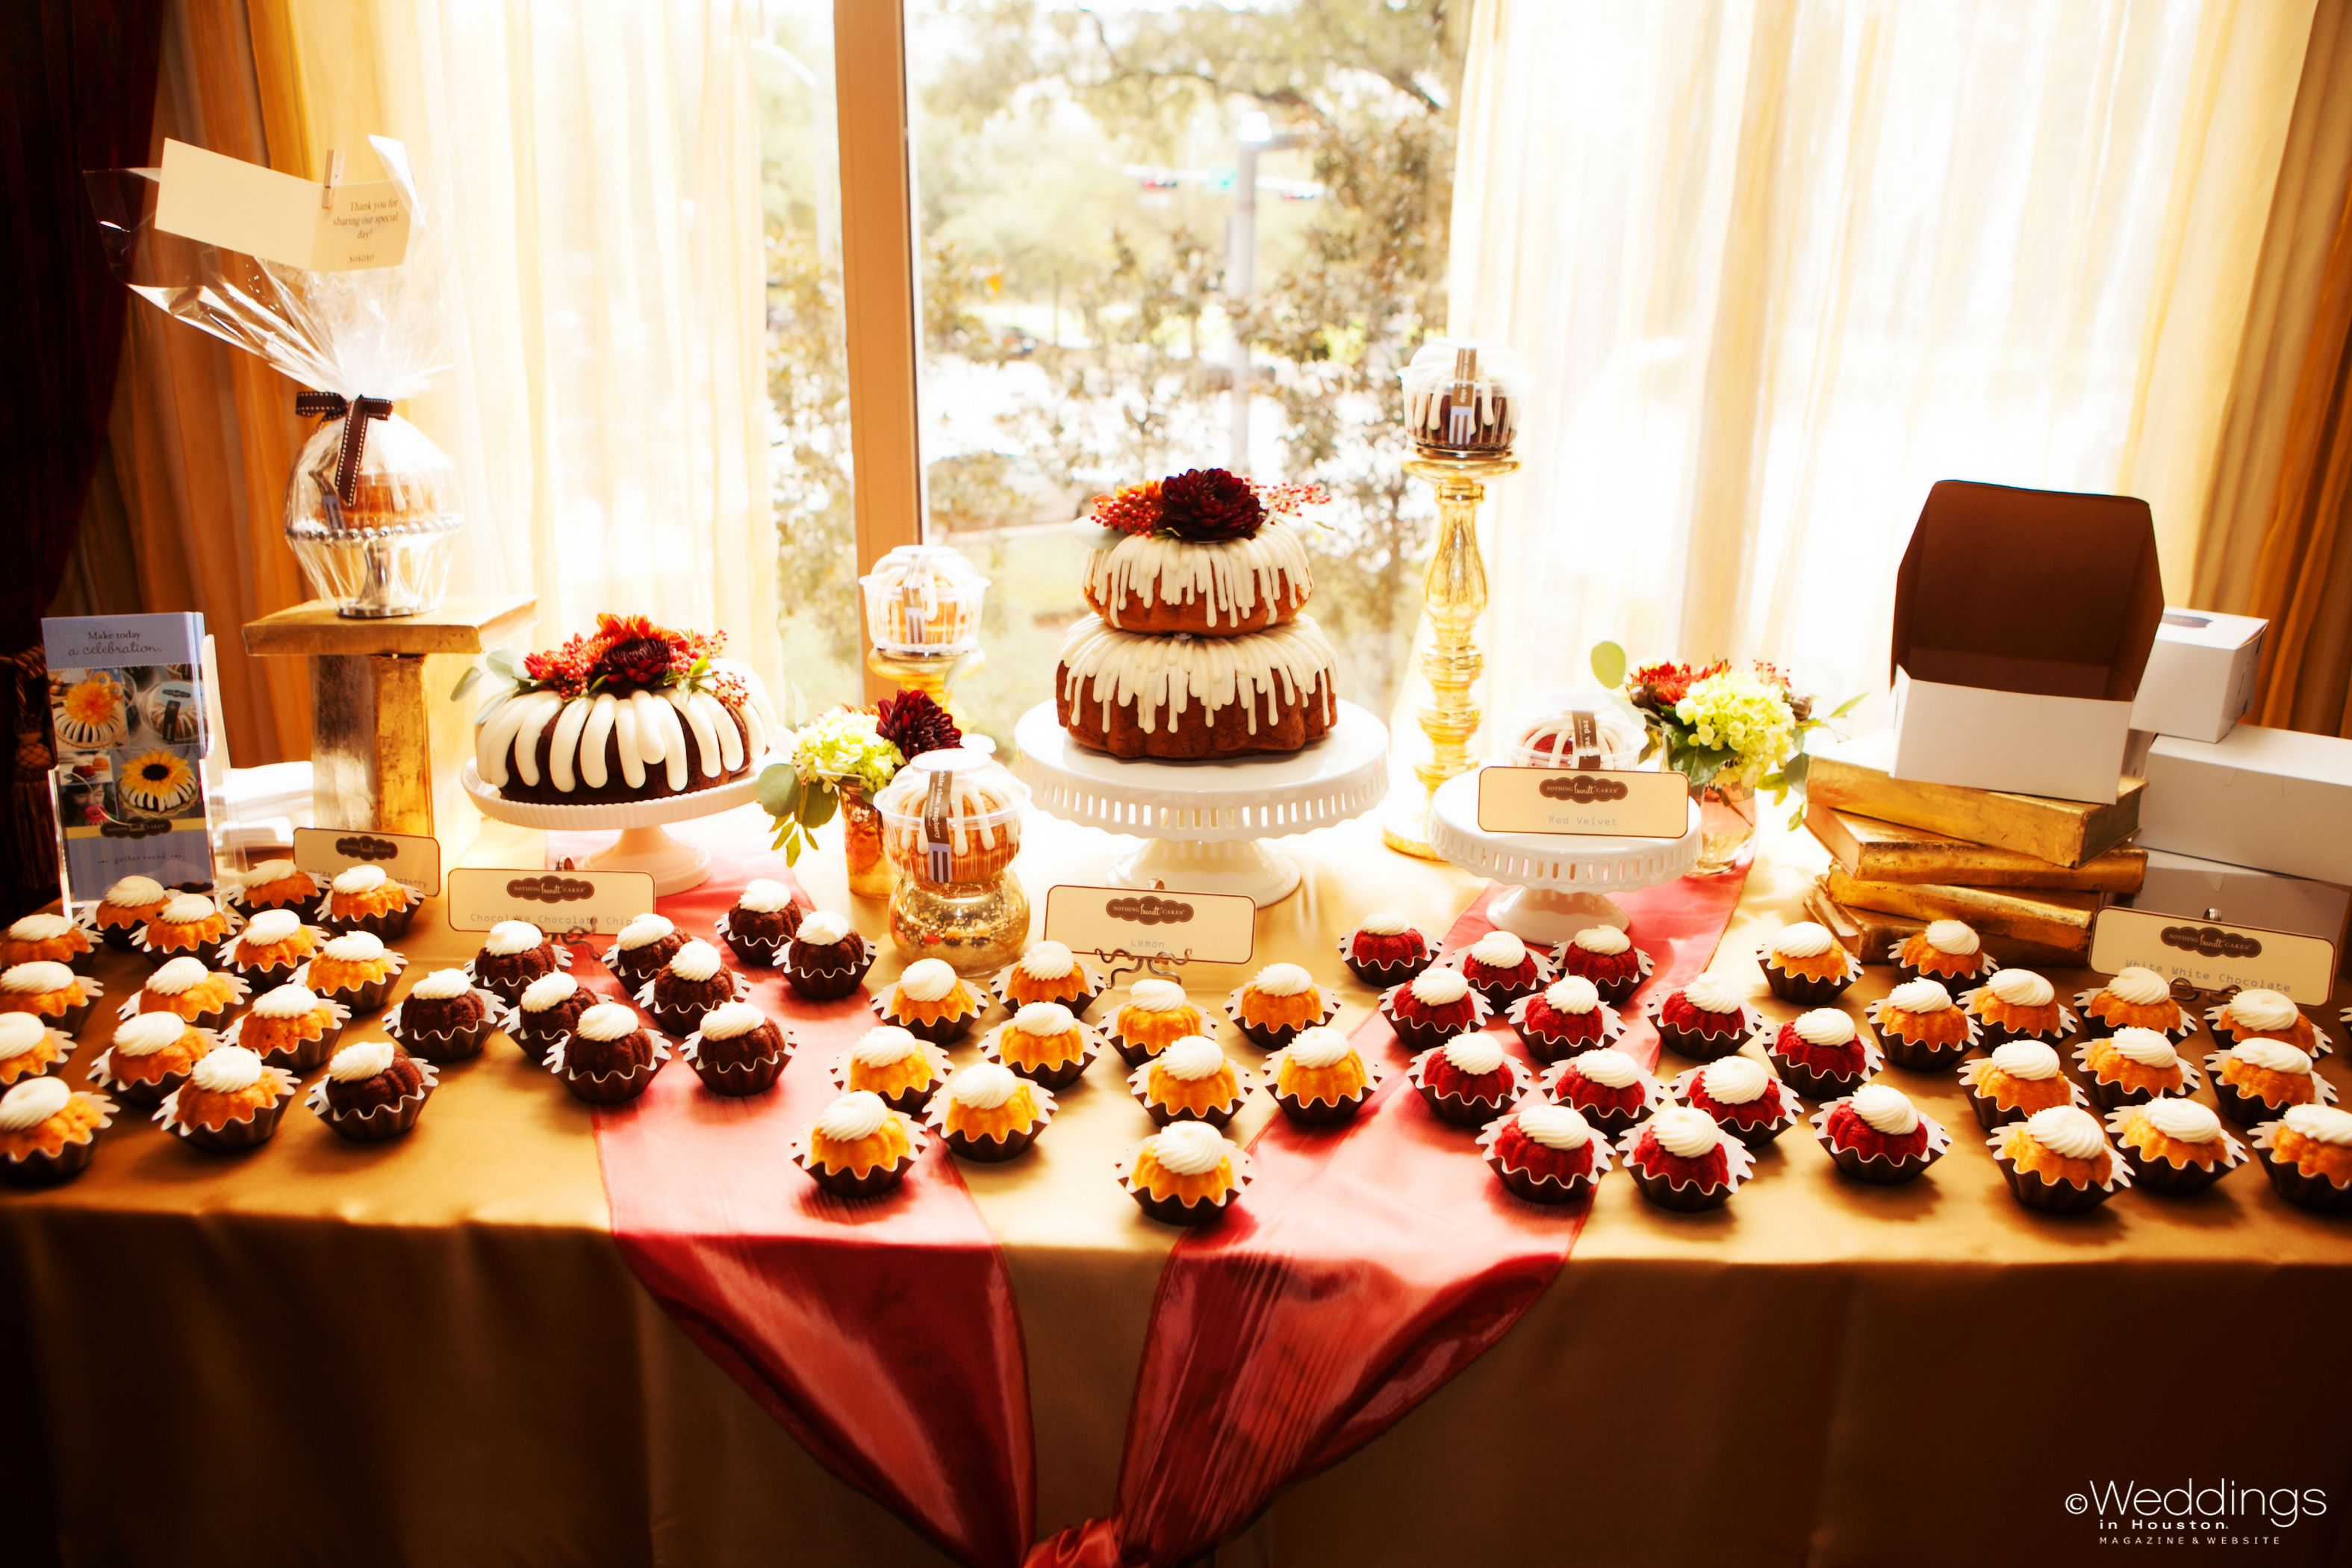 Bundt cake dessert table by Nothing Bundt Cakes Featured